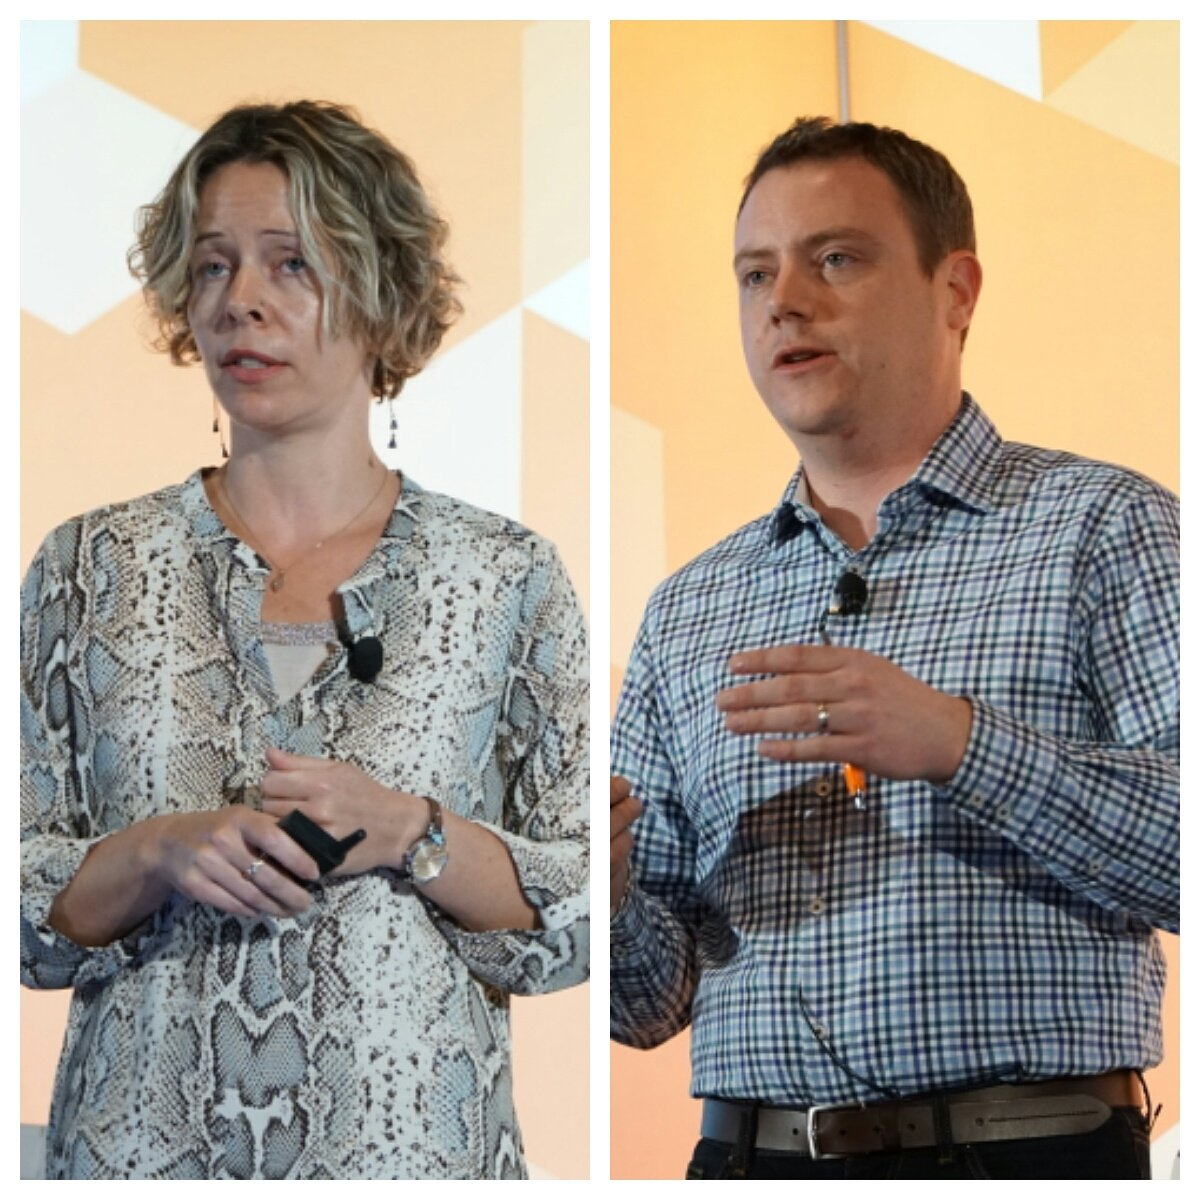 wejobes: Noelle Darlington and Gordon Knoppe gave a really good talk on migration Magento 1 to Magento 2 #MagentoImagine https://t.co/9oWMrAc9nn